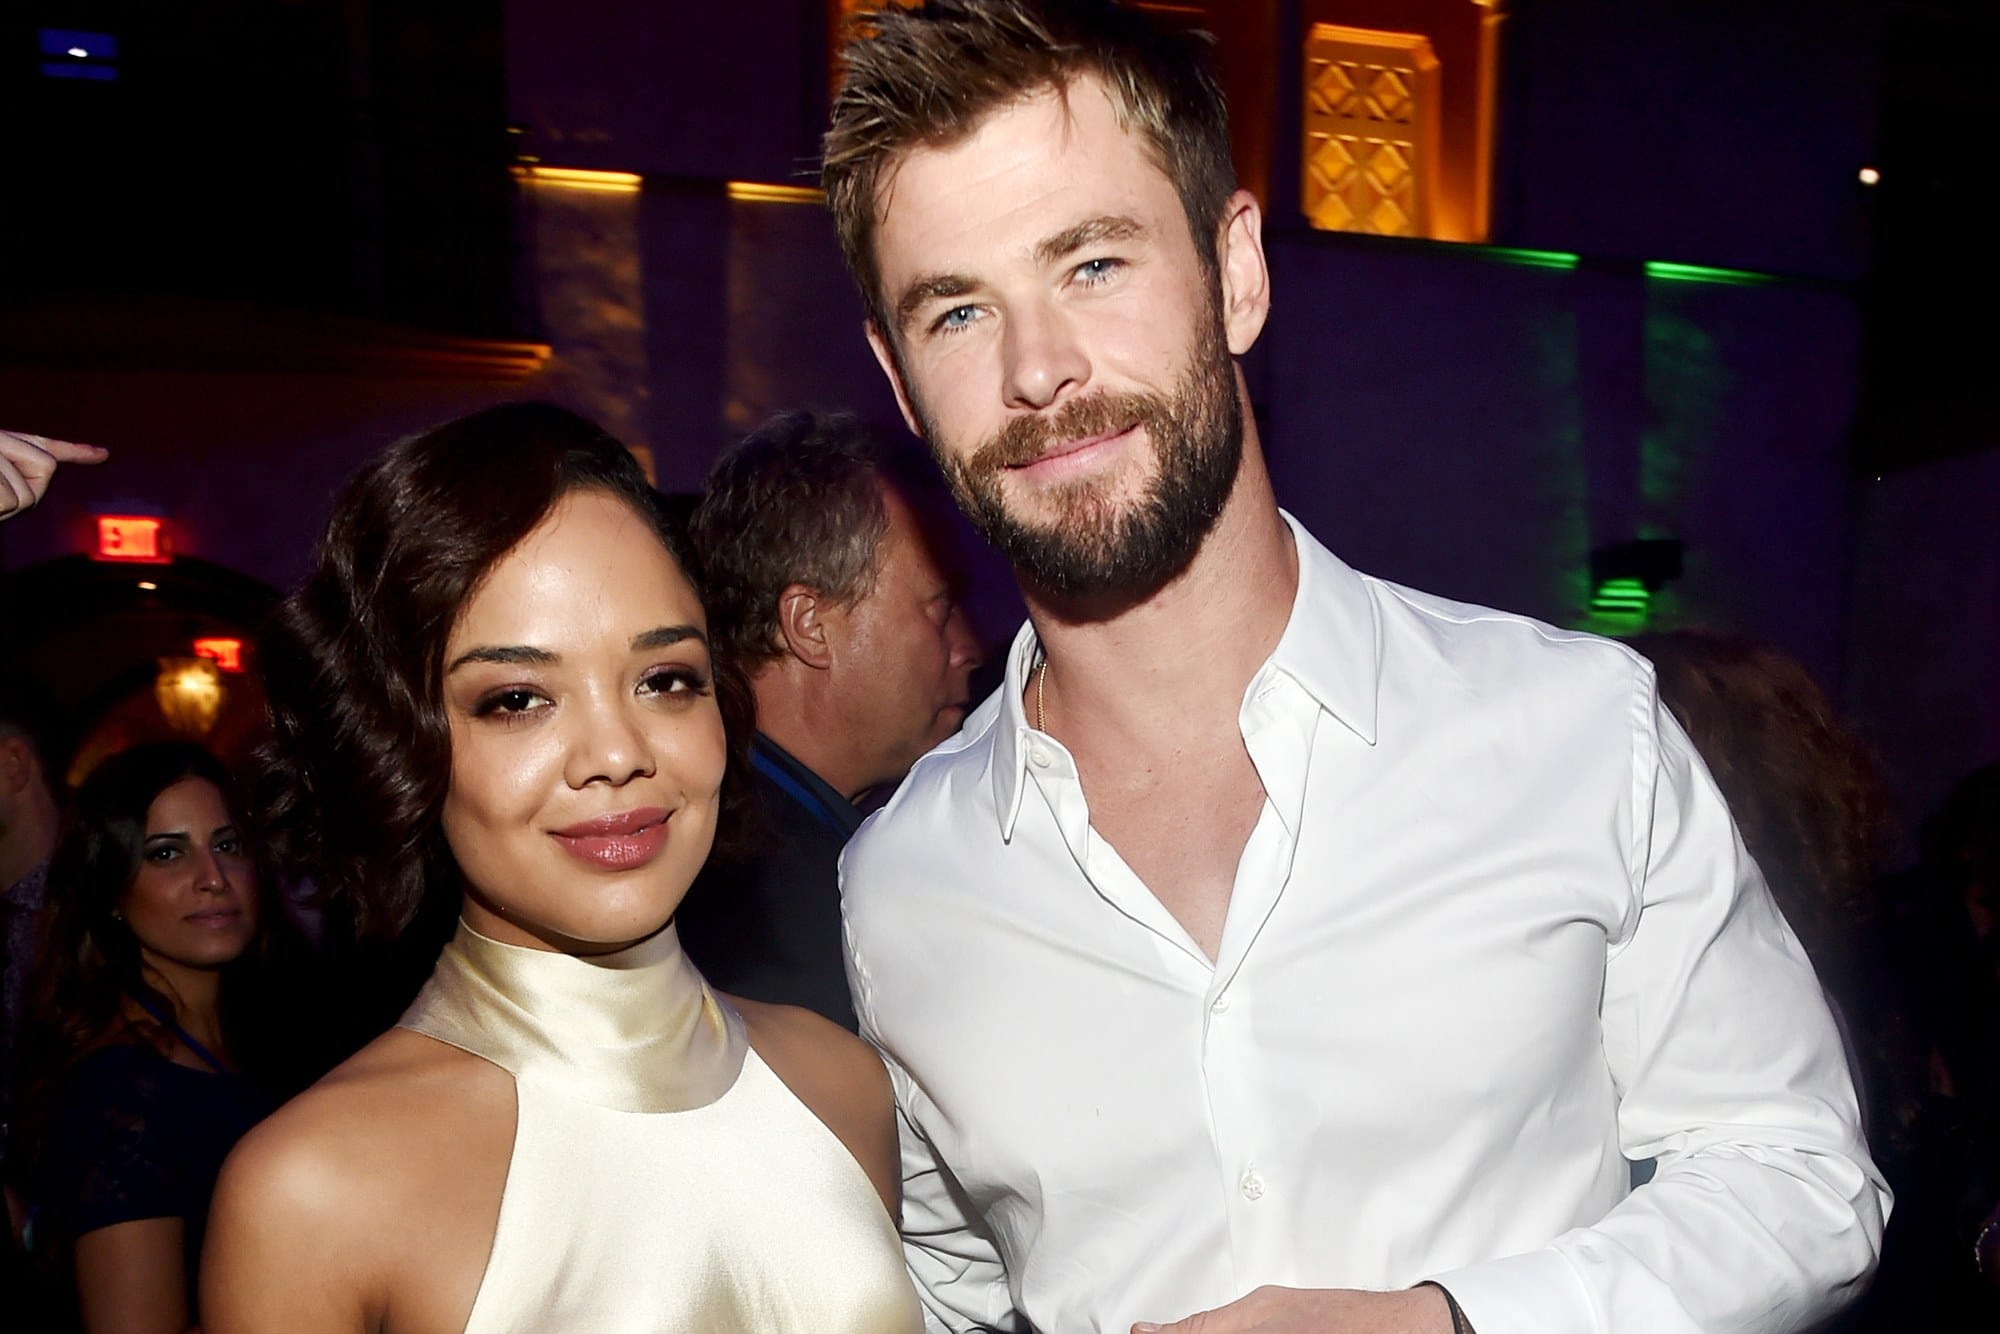 Chris Hemsworth And Tessa Thompson Make A Birthday Video For Robert Downey Jr.